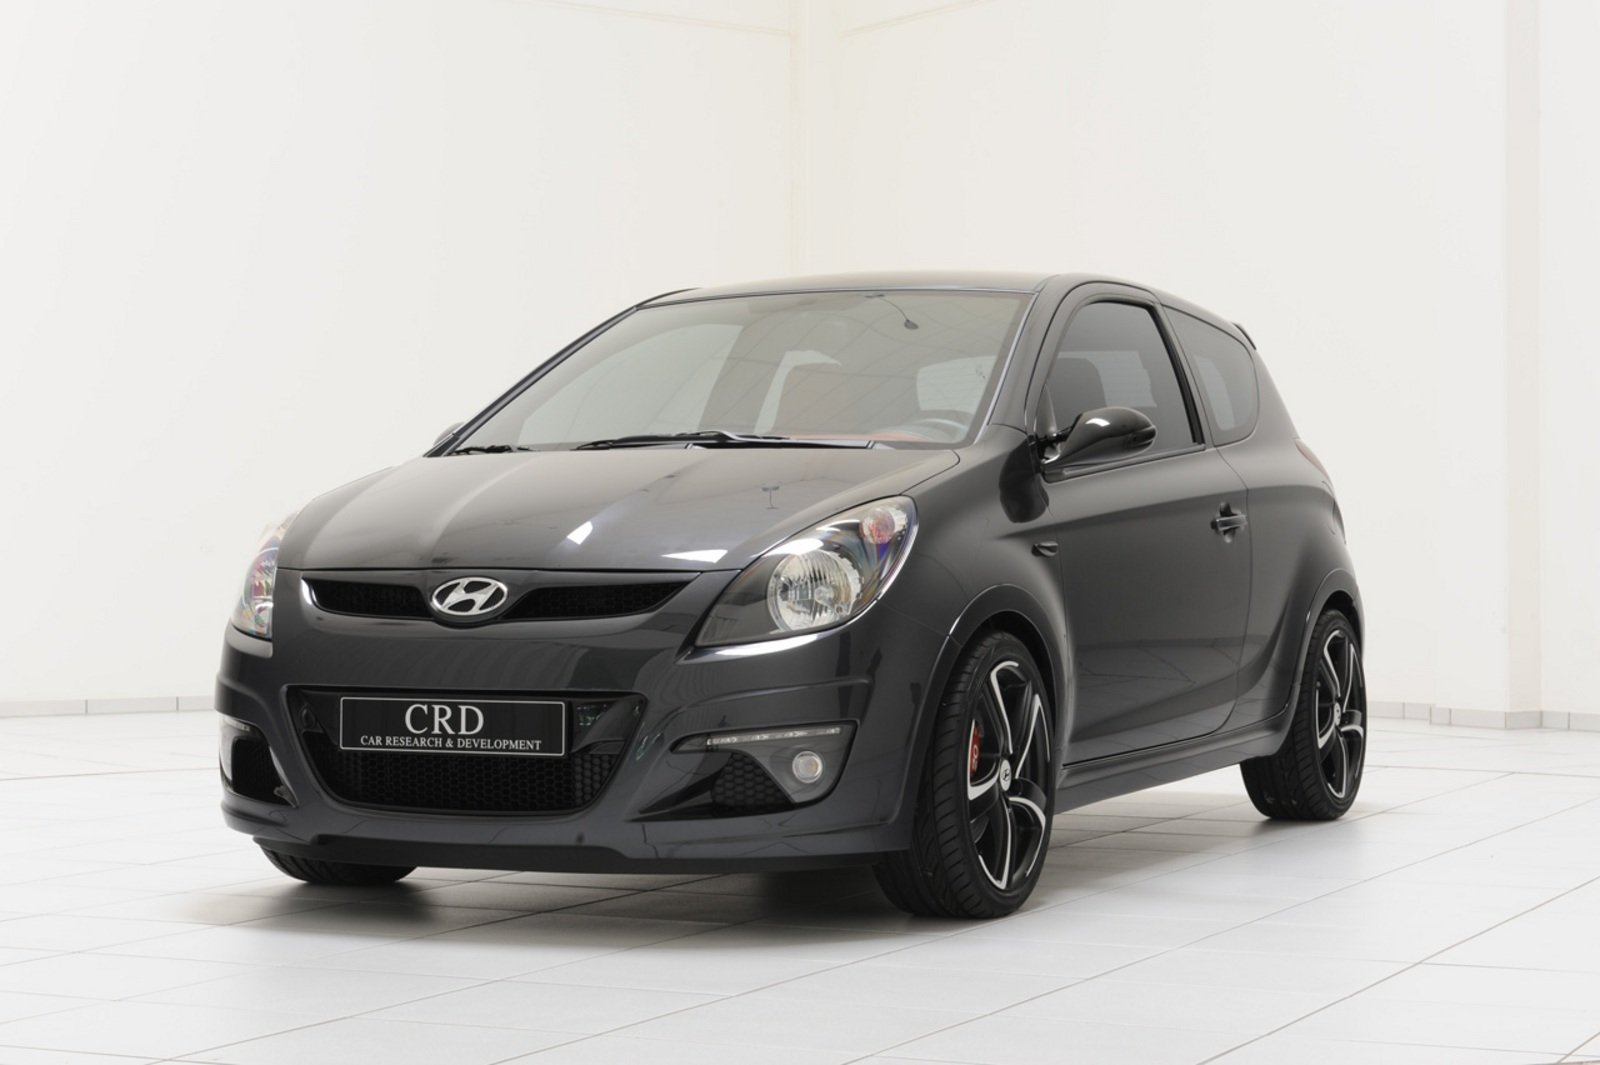 2010 hyundai i20 sport edition by brabus review top speed. Black Bedroom Furniture Sets. Home Design Ideas